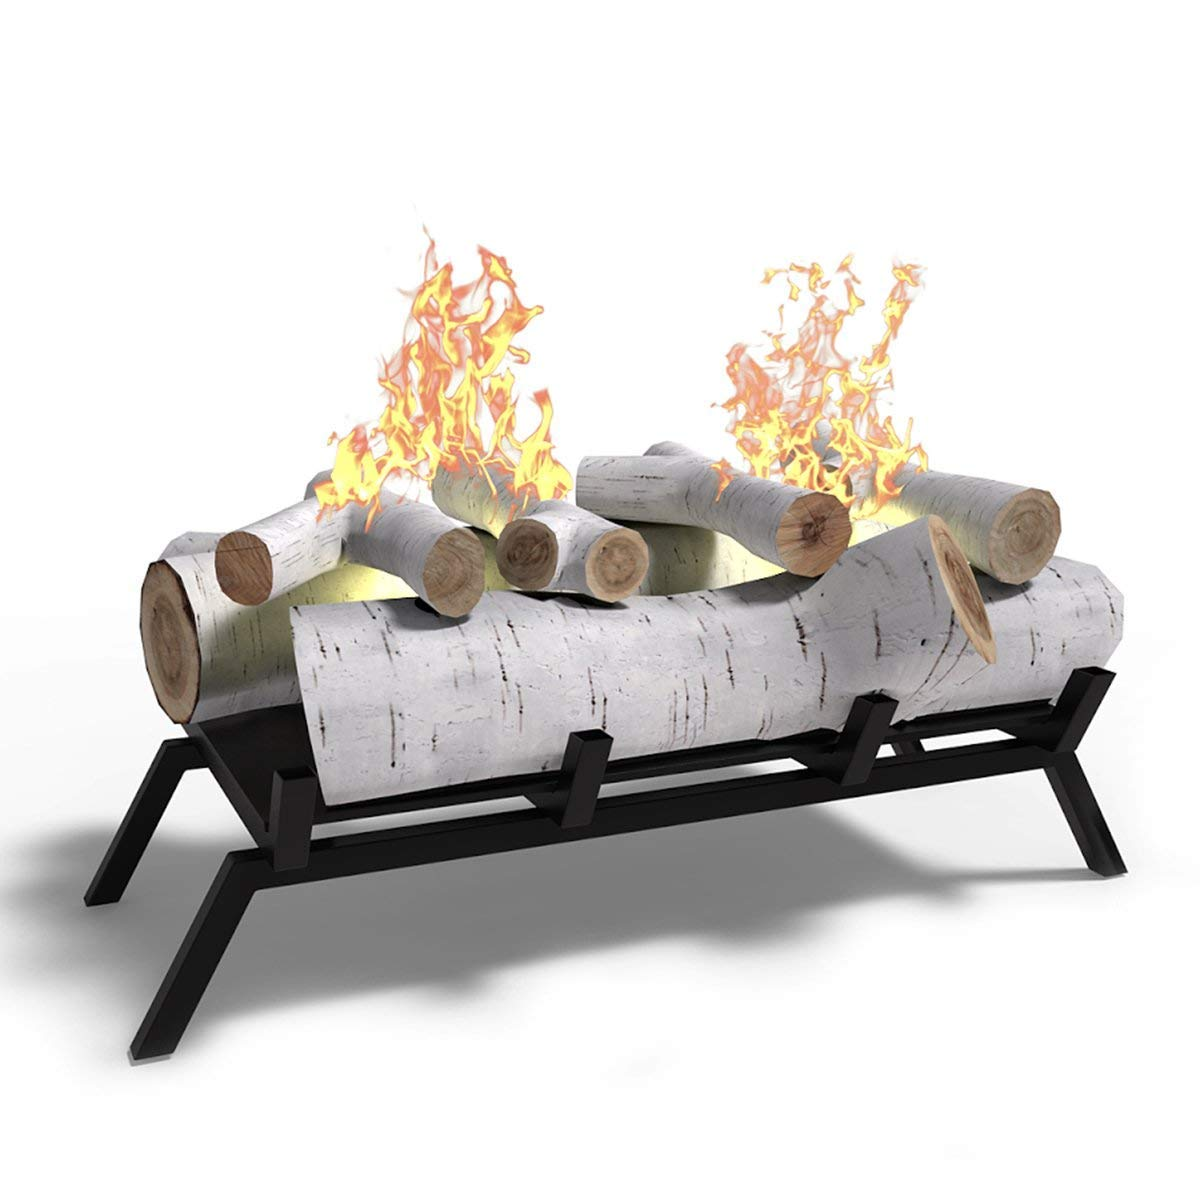 Regal Flame Birch 18'' Ethanol Fireplace Grate Log Set with Burner Insert For Easy Conversion from Gas Logs, Gel, Wood Log, Electric Log, Electric Fireplace Insert or Wood Burning Fireplace Insert by Regal Flame